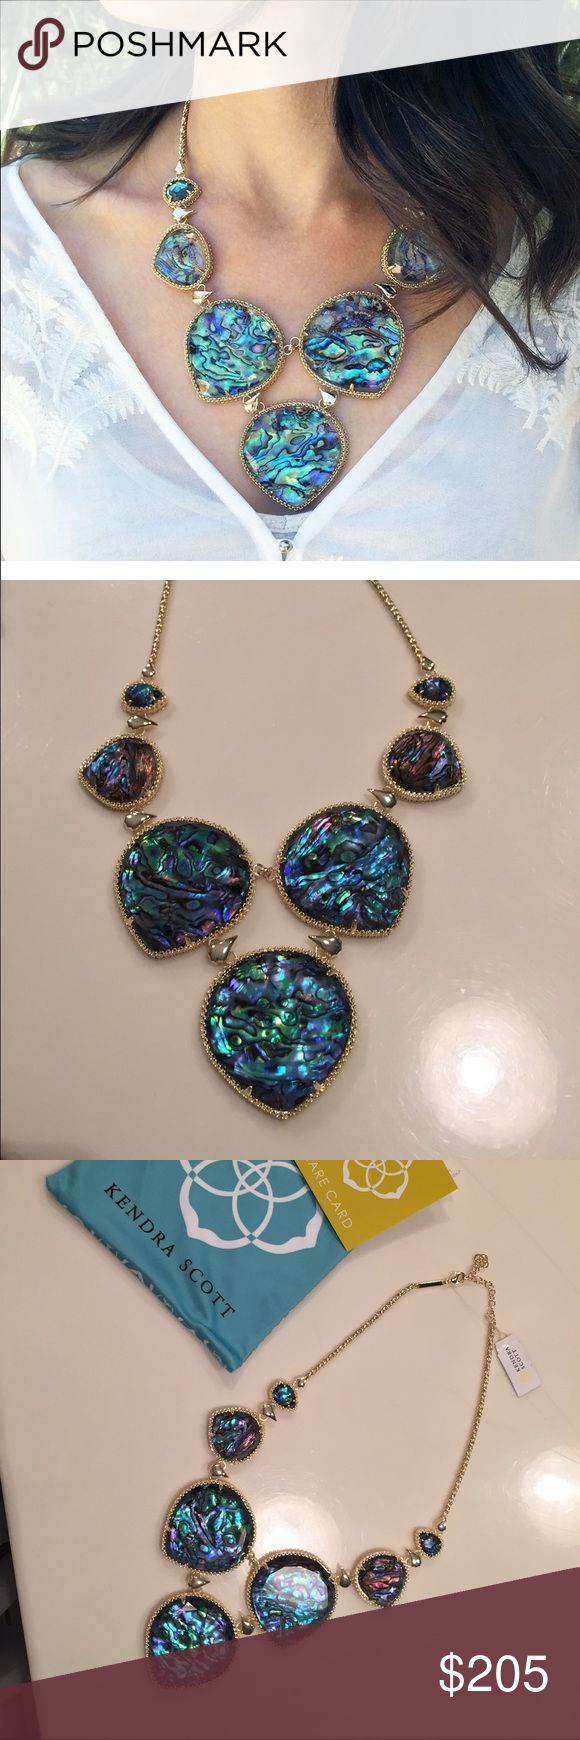 New w/tags! Kendra Scott Rebecca Abalone Necklace New w/tags! Kendra Scott Rebecca Abalone Necklace. No trades. Style: Statement; Metal: 14k Gold Plated over Brass Stone/Color:  Abalone Shell; Some stones are more purple and blue and others more green and yellow; Each stone is unique. Closure Type:  Lobster Claw Measurements: Approximate  Overall length is 18 inches with 2 inch extender; Largest stone is 1.94 inches. Comes in a Kendra Scott dust bag with care card. Kendra Scott Jewelry…